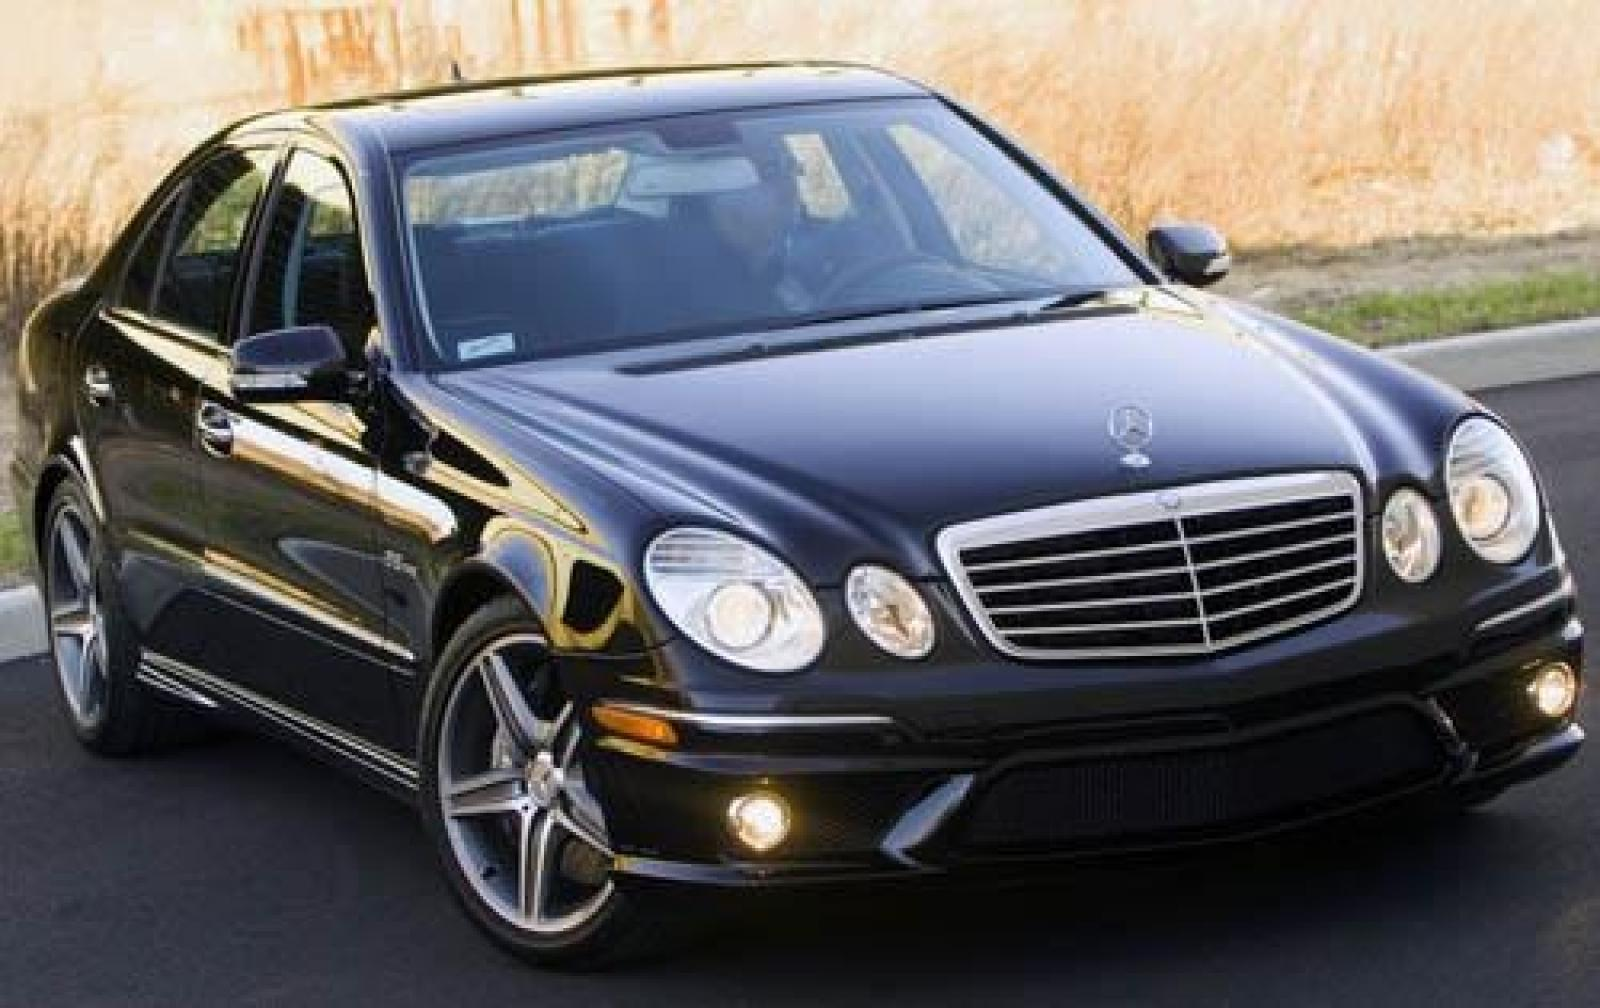 800 1024 1280 1600 origin 2009 mercedes benz